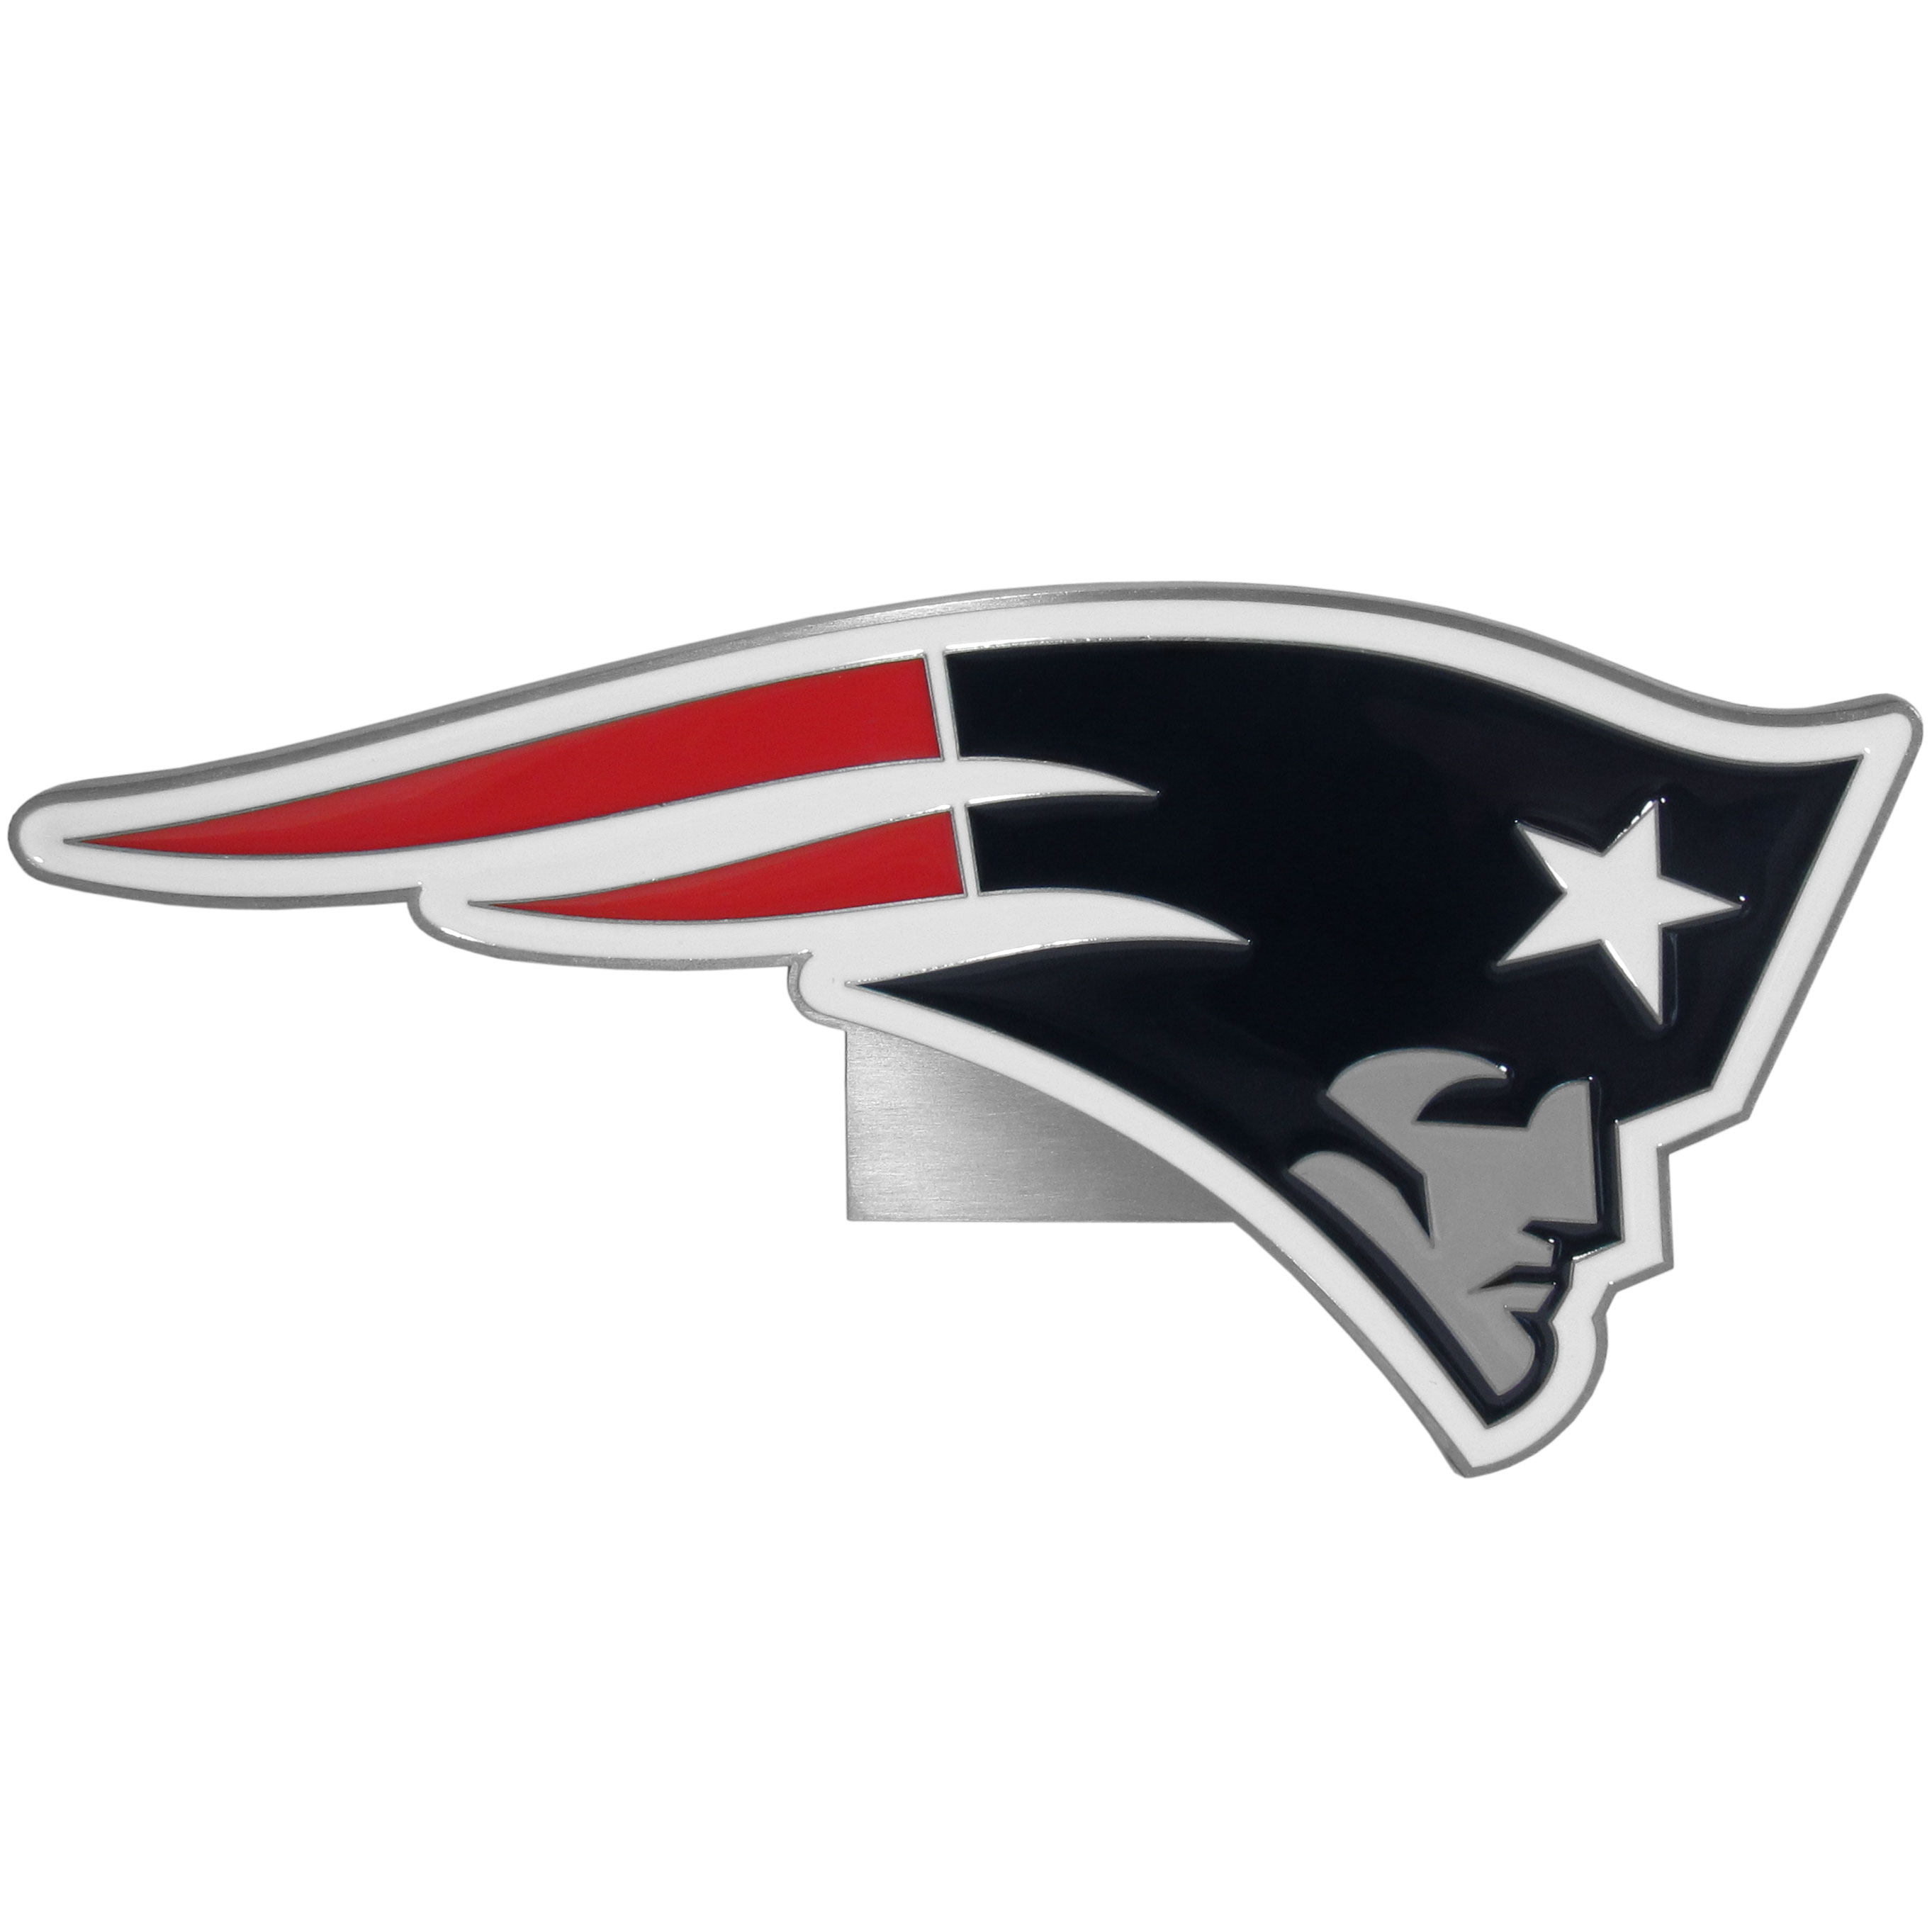 New England Patriots Large Hitch Cover Class II and Class III Metal Plugs - Whether you're driving in rival territory, or caravanning to the game, show your New England Patriots pride with our high-quality logo hitch covers. These are the highest quality hitch covers on the market. The plates are solid metal and are over 1/4 inch thick with deeply cast detail with an expertly enameled finish. The extra large hitch plate comes with a kit for Class II and Class III hitch receivers and includes: full metal plugs, screws and bracket.